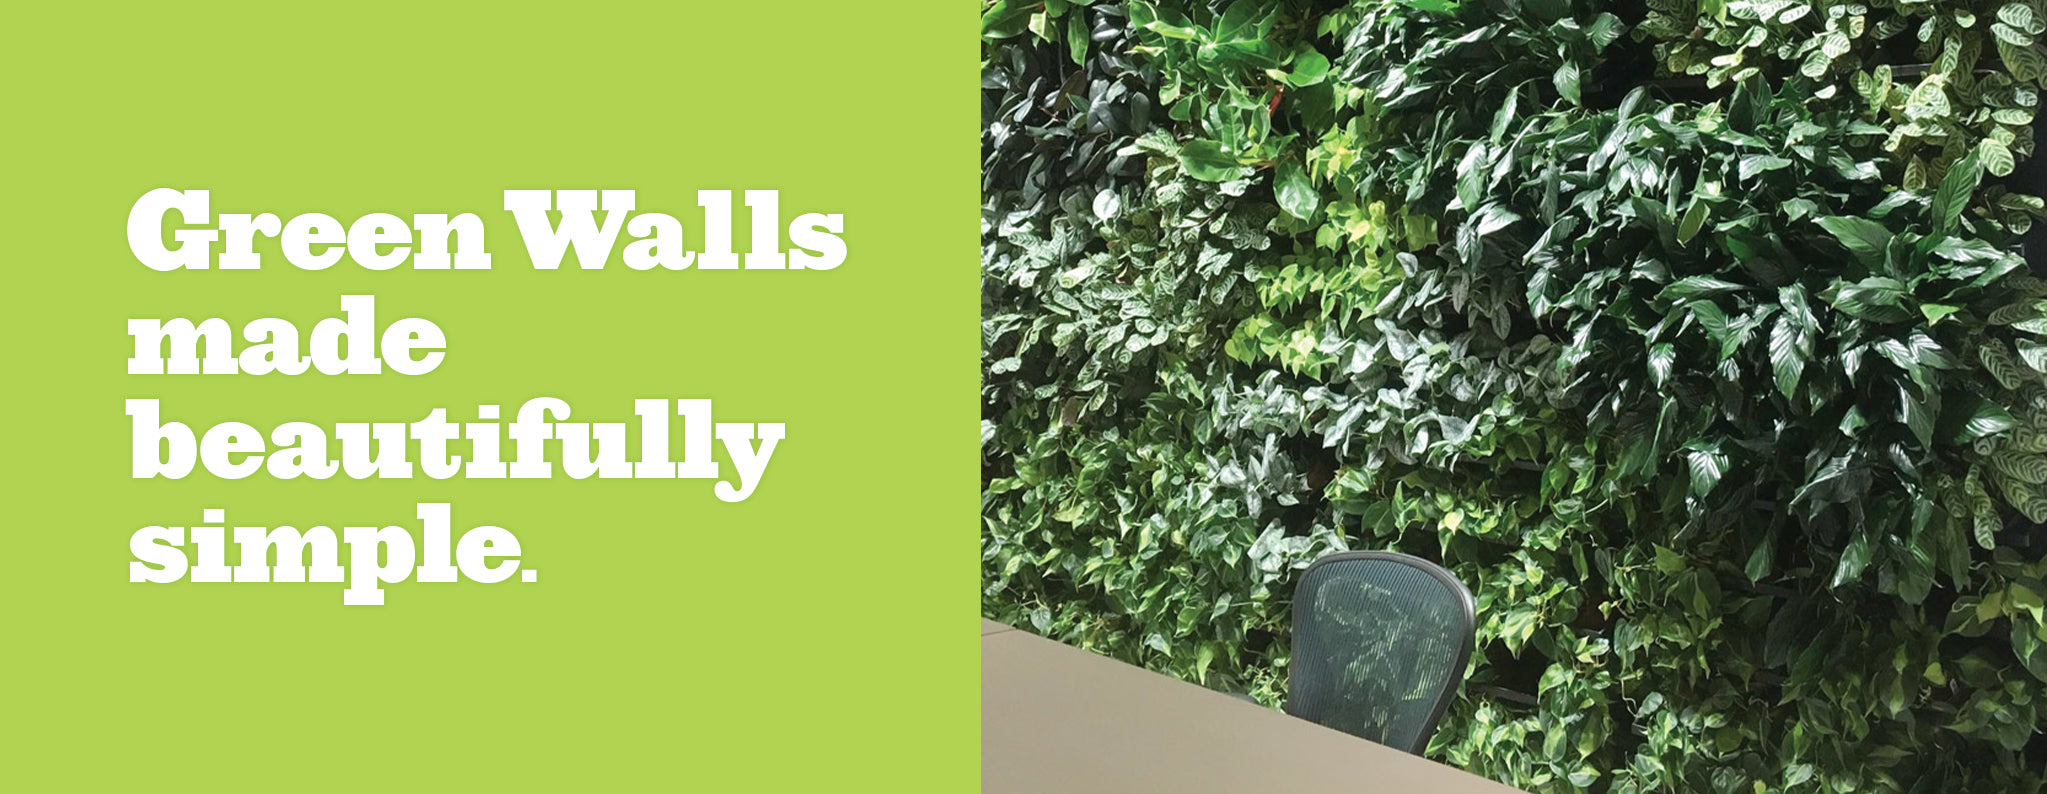 Botanicus Plantups Greenwalls - a living green wall system that is modular and easy to install